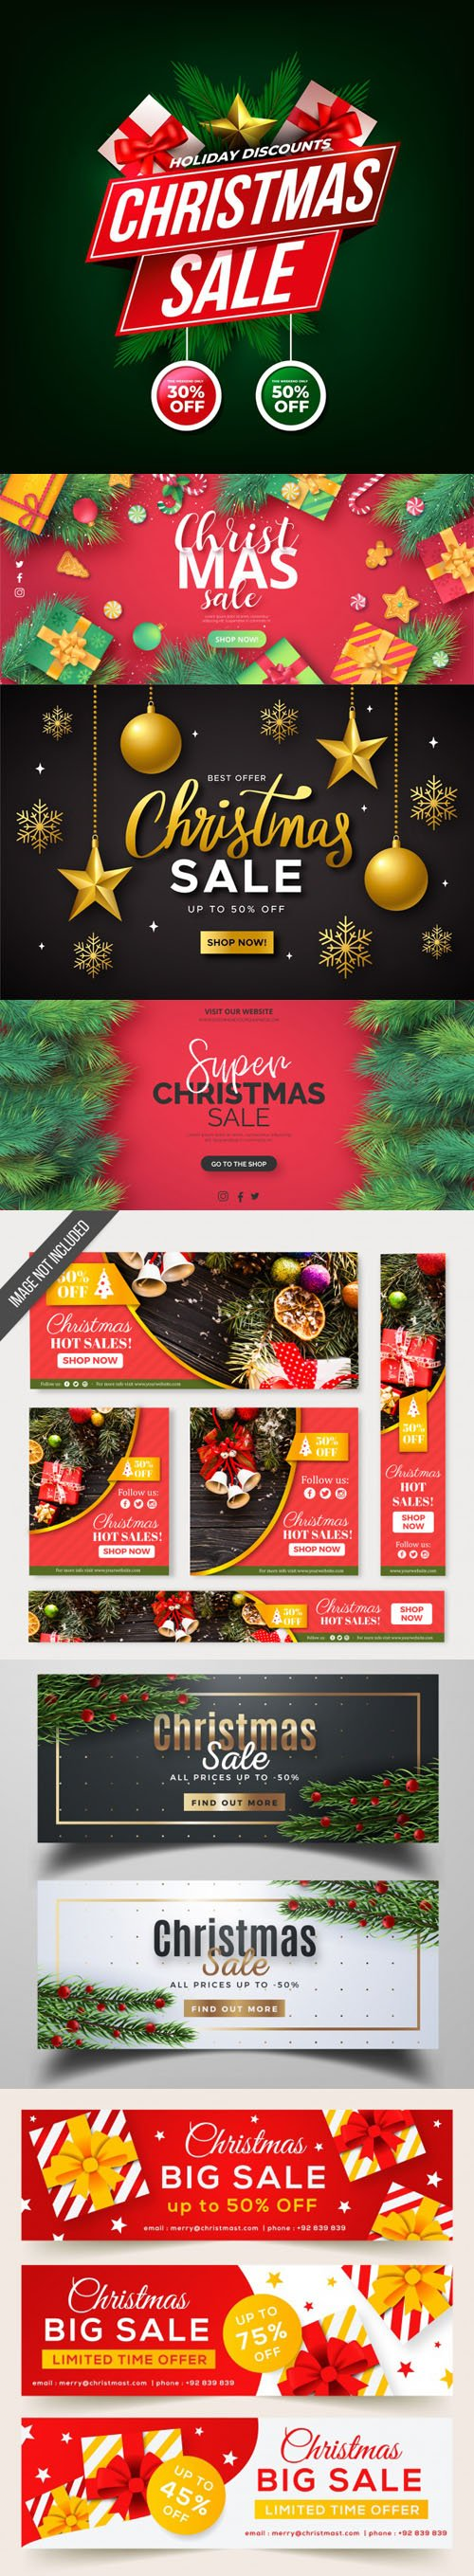 Holiday Sales Banners Vector Collection 3